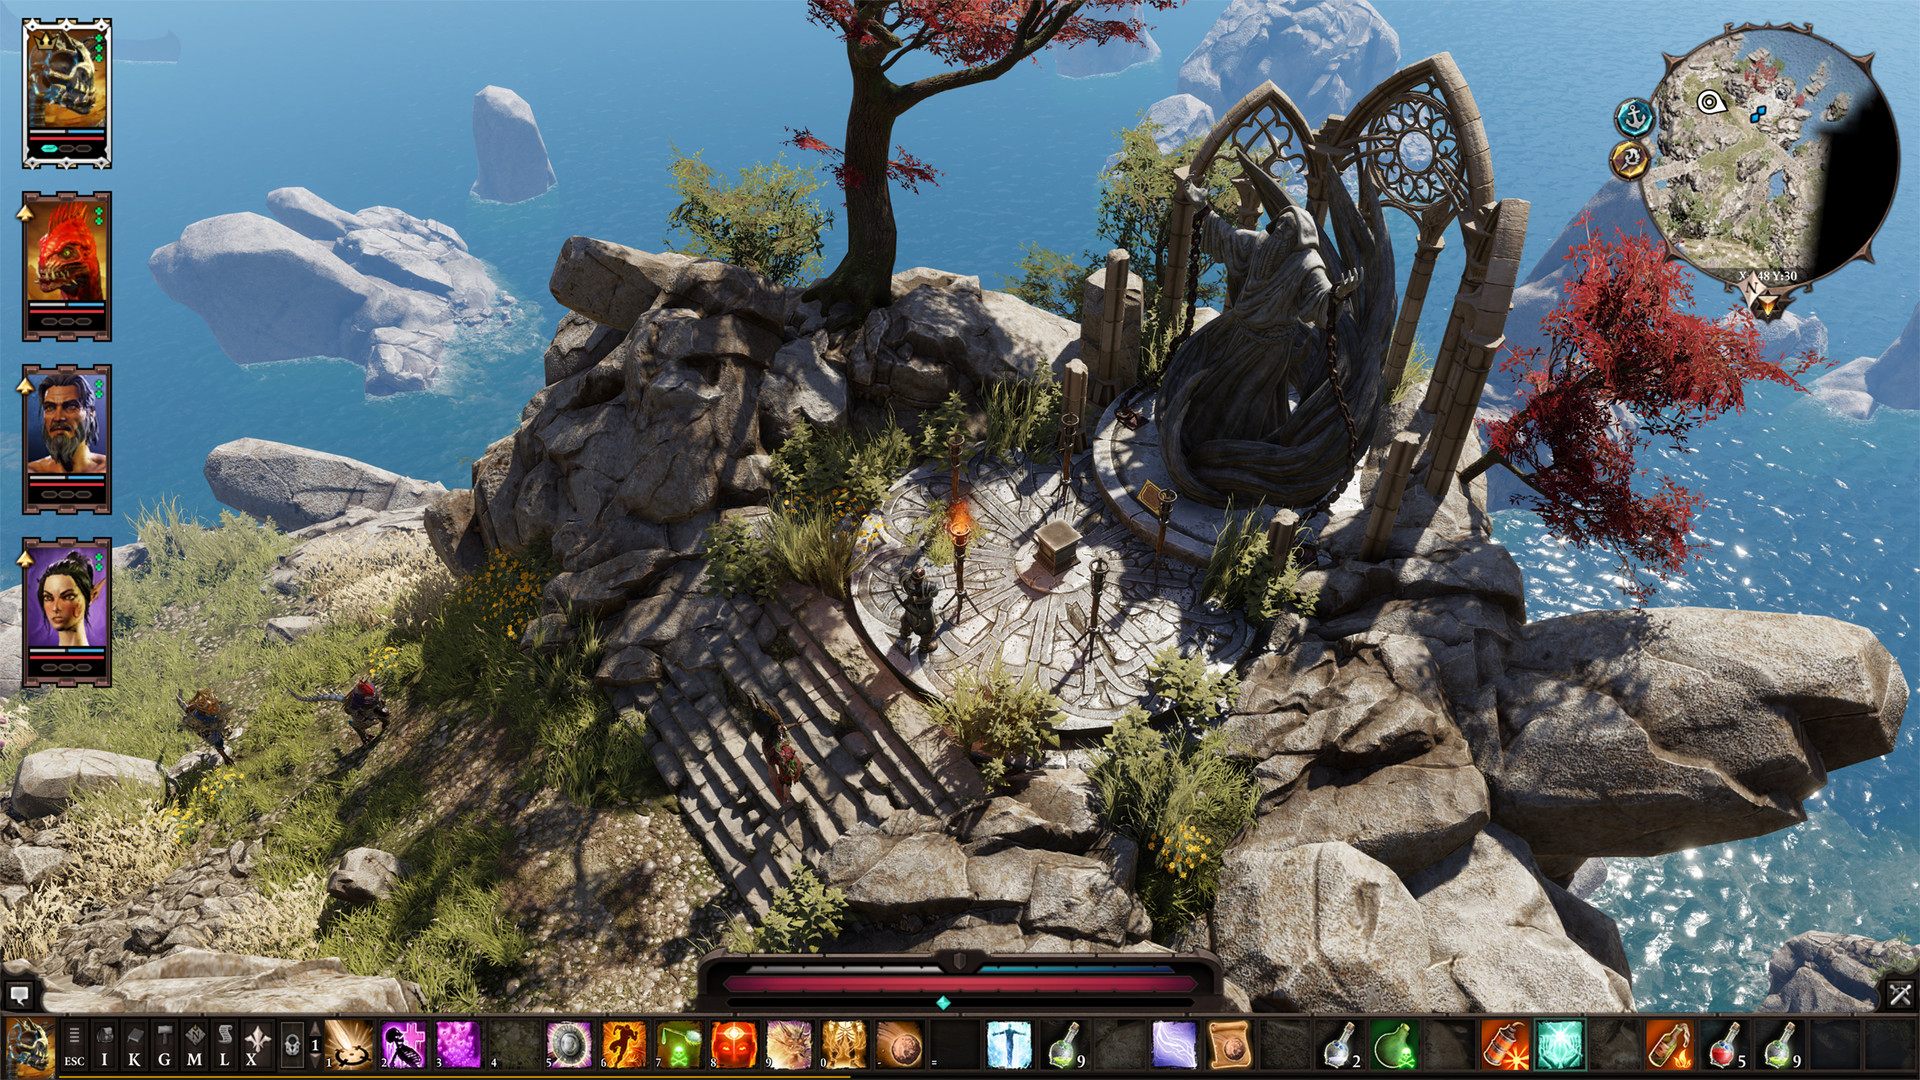 download divinity original sin 2 cracked by codex deluxe edition include all dlc and latest update mirrorace multiup